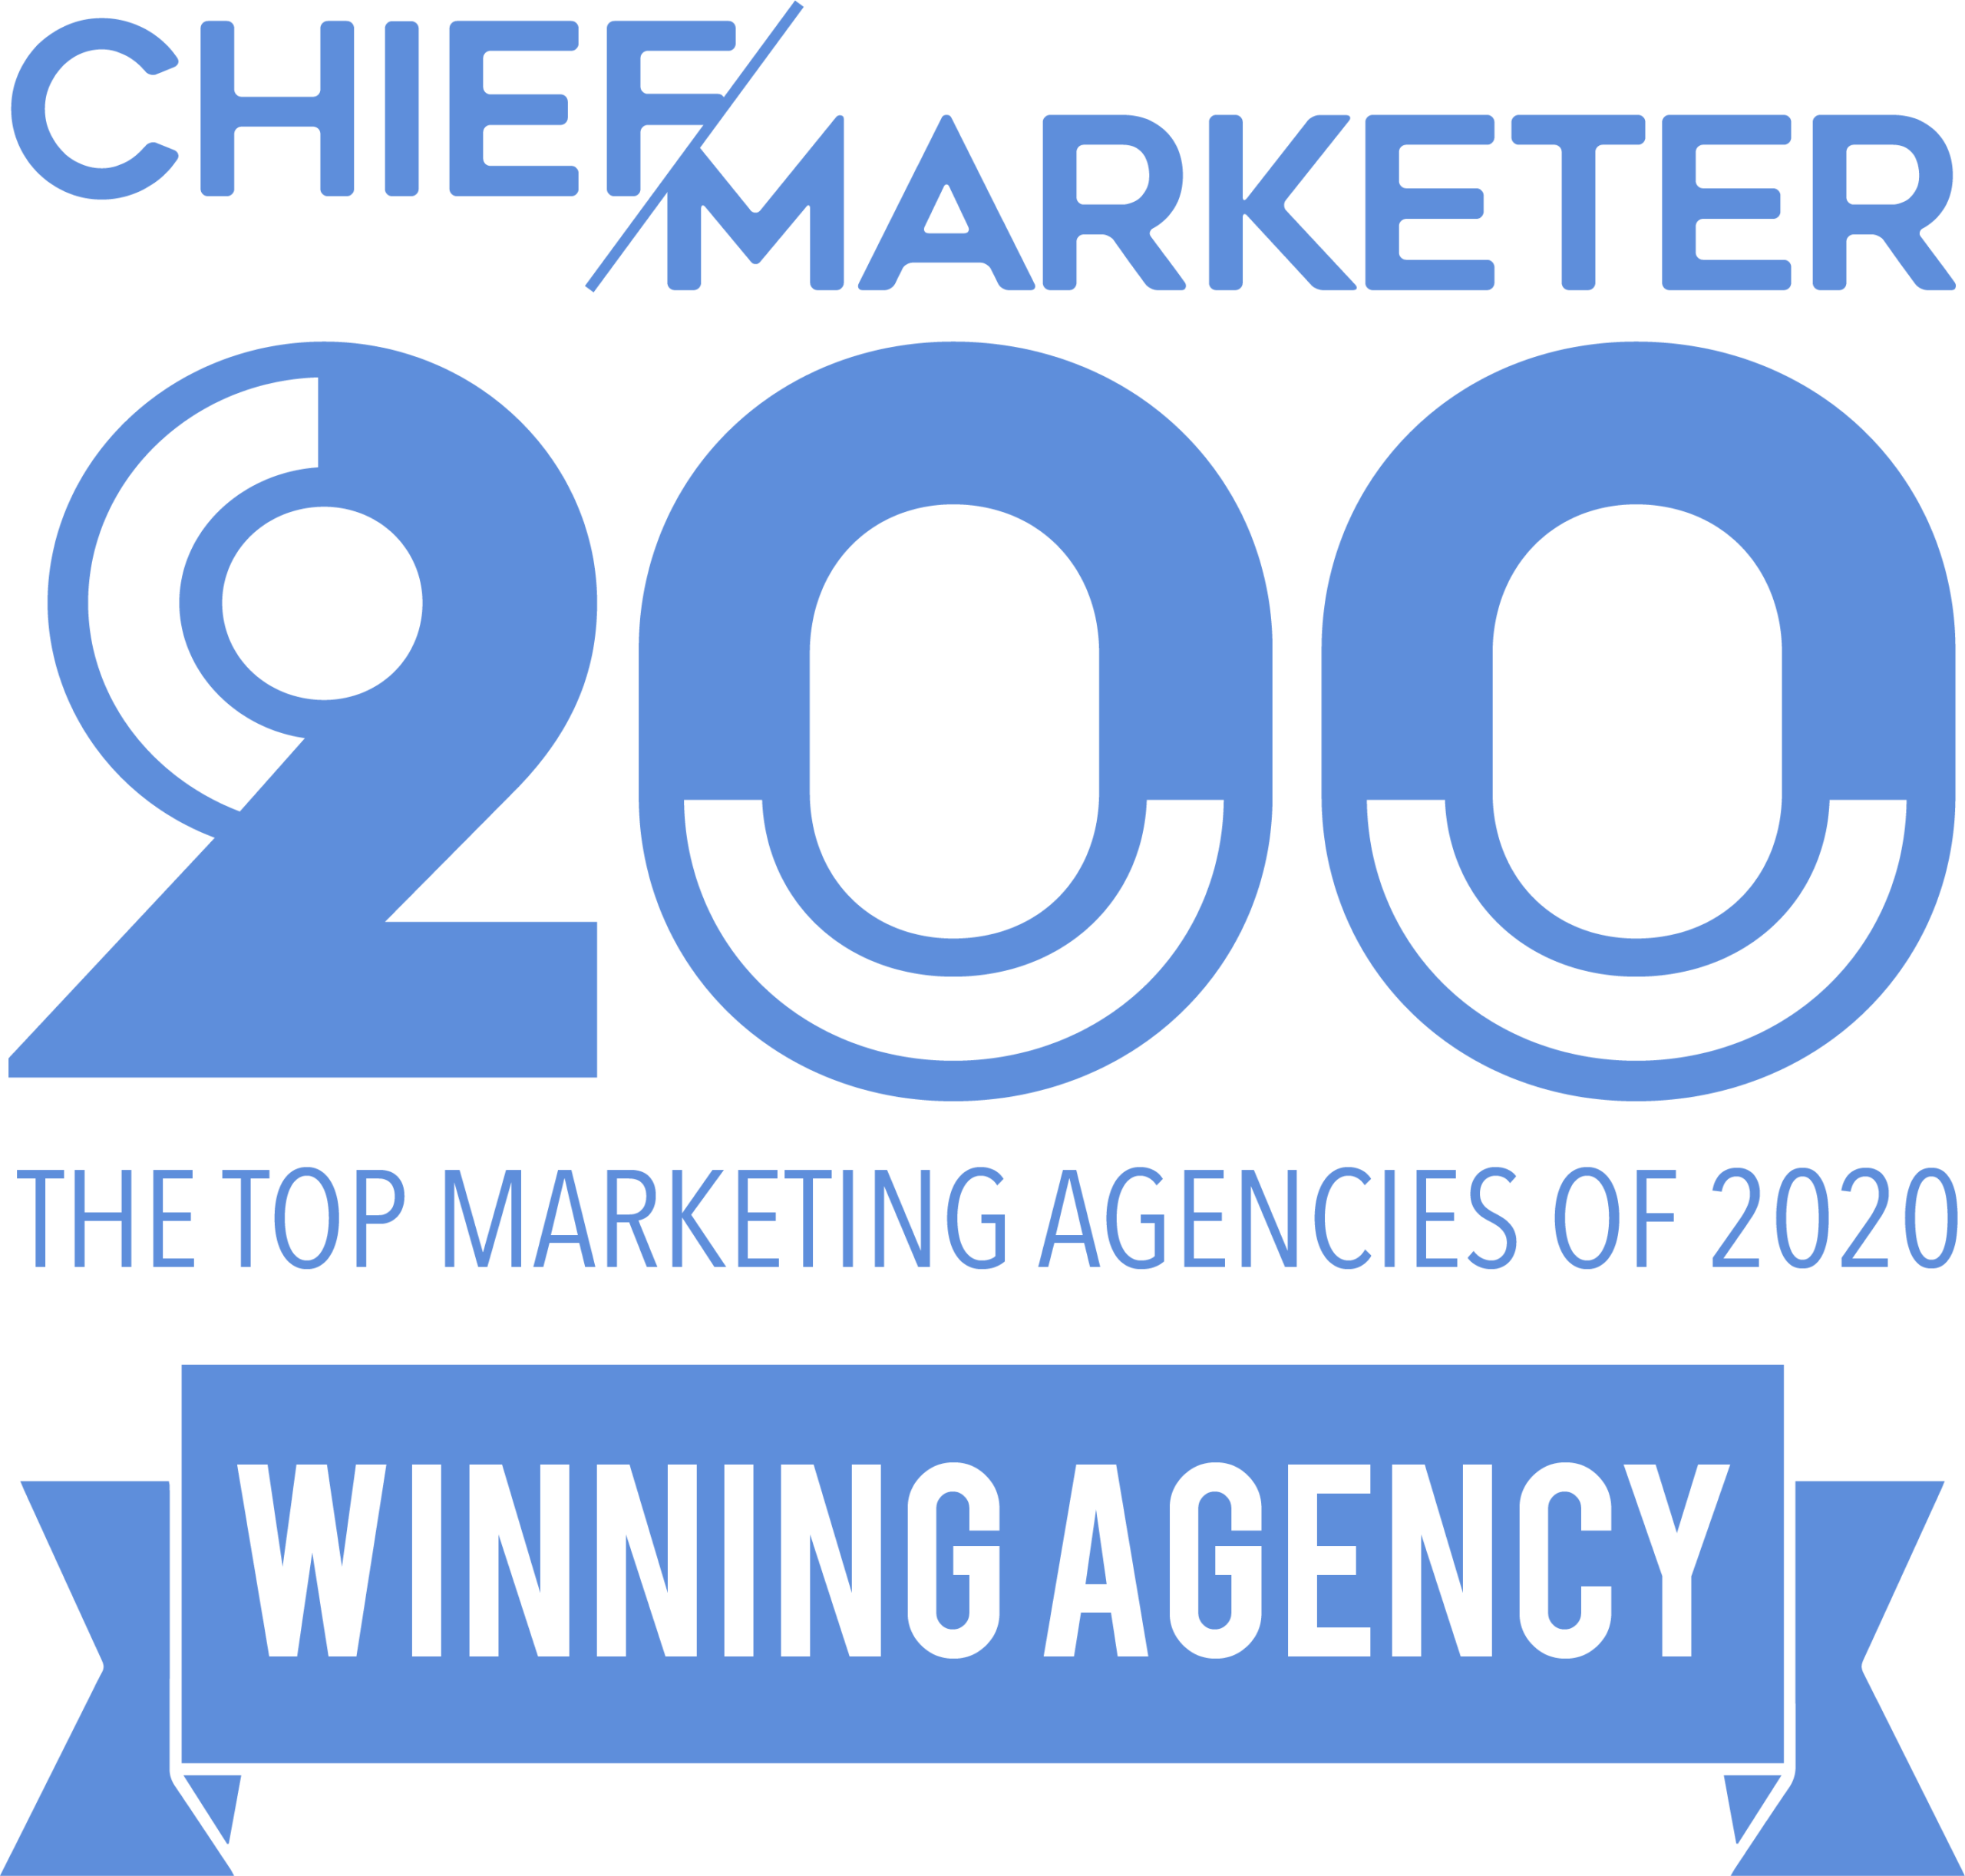 Chief Marketer 200 - The Top Marketing Agencies of 2020 - Winning Agency